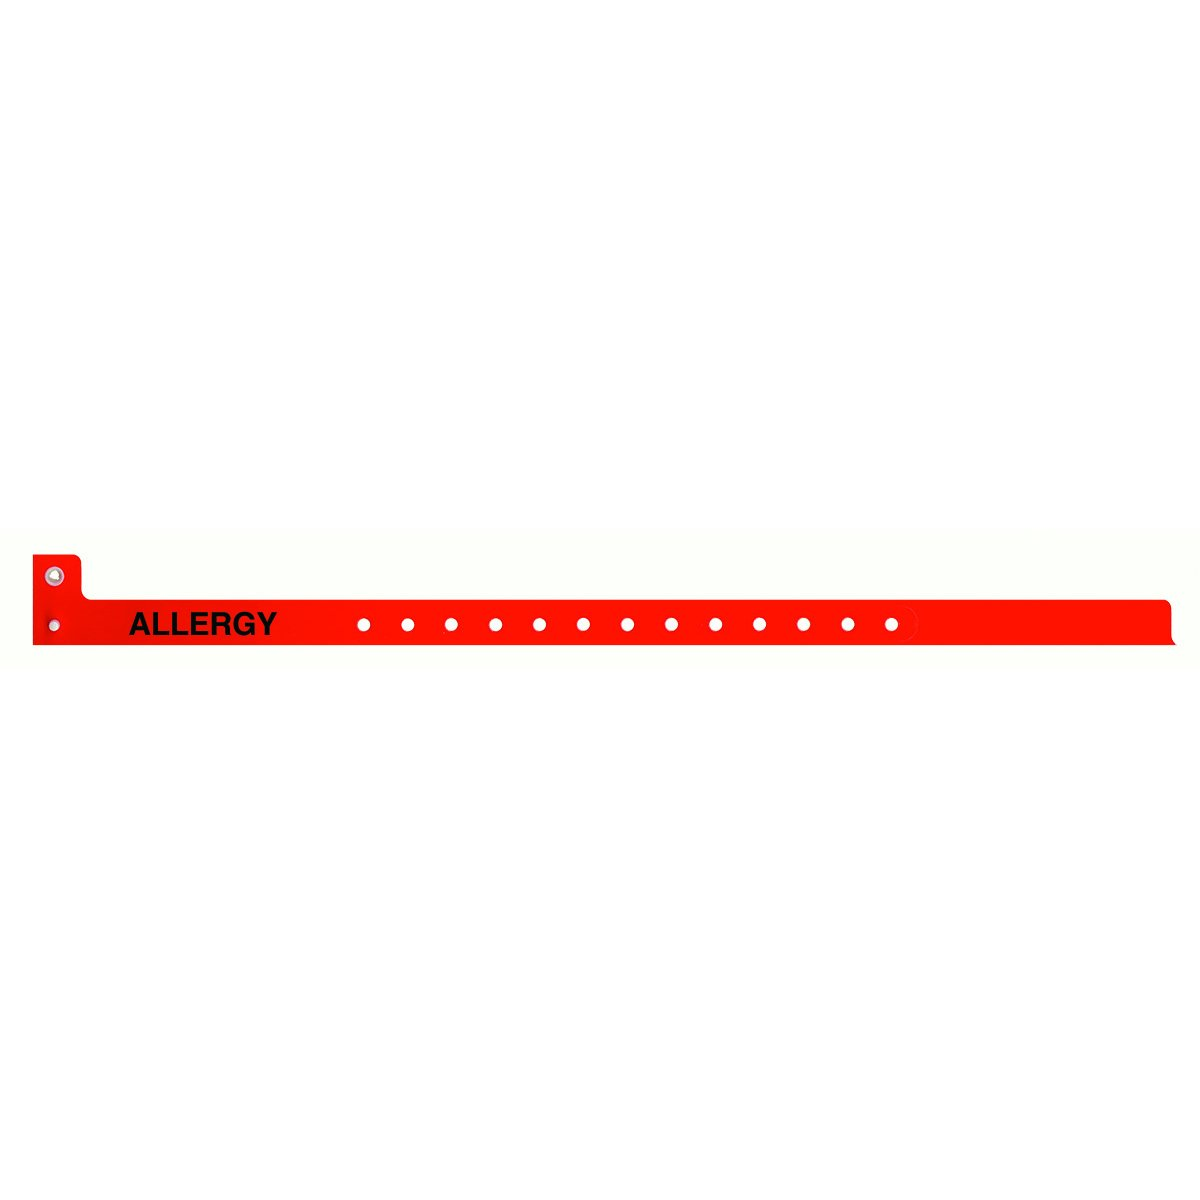 PDC Healthcare WBCNAA-5 Sentry Alert Wristband, Poly, ''ALLERGY'' Pre-Printed, State Standardization 1/2'' x 13'', Adult/Pedi, Red (Pack of 500)